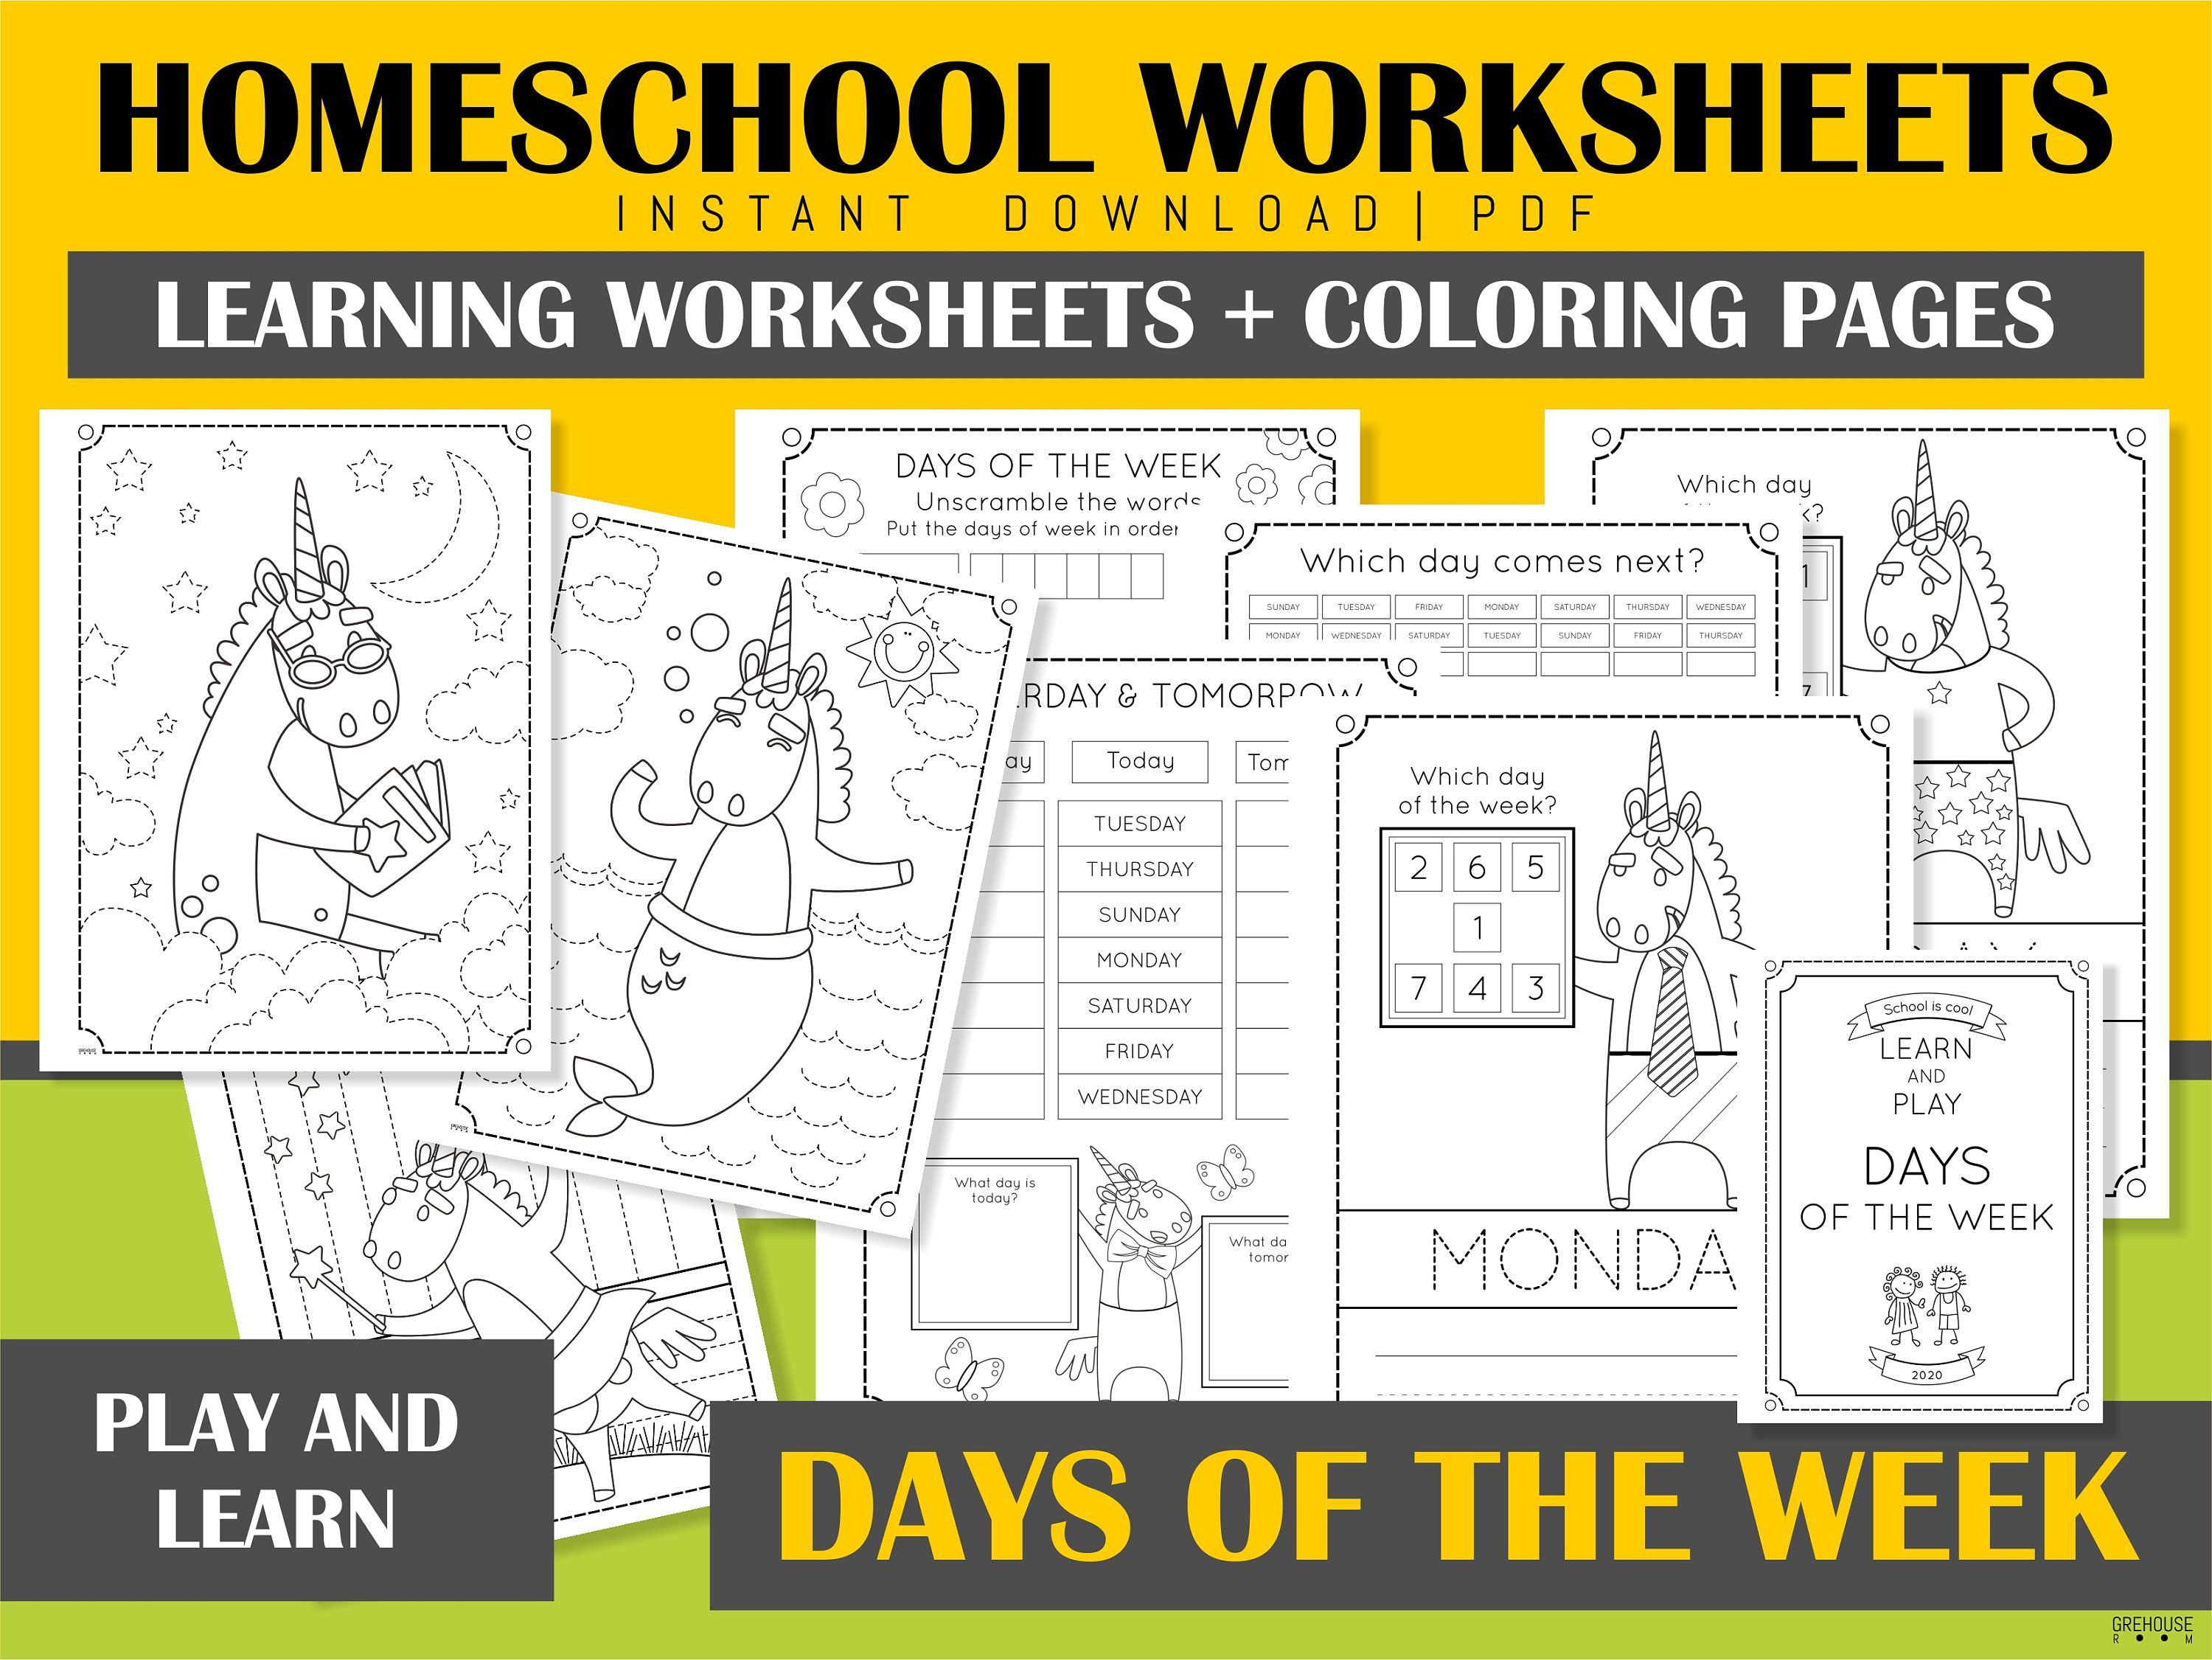 Days Of The Week Printable Homeschool Learning Worksheets